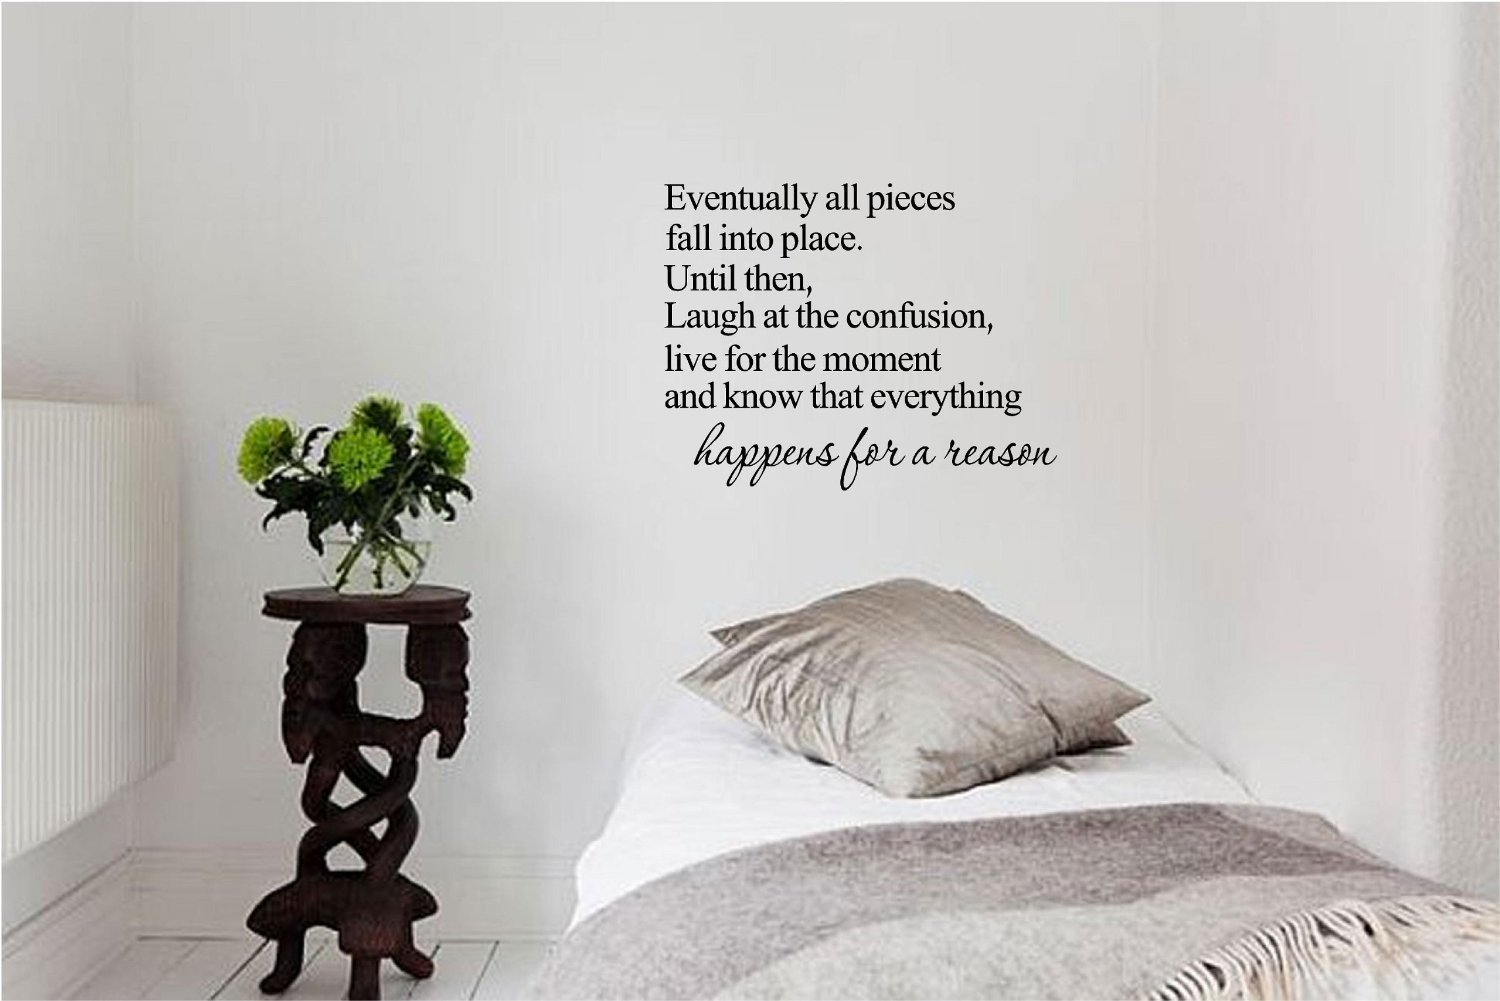 Eventually all pieces fall into place. Until then, laugh at the confusion, live for the moment and know that everything happens for a reason. Vinyl wall art Inspirational quotes and saying home decor decal sticker